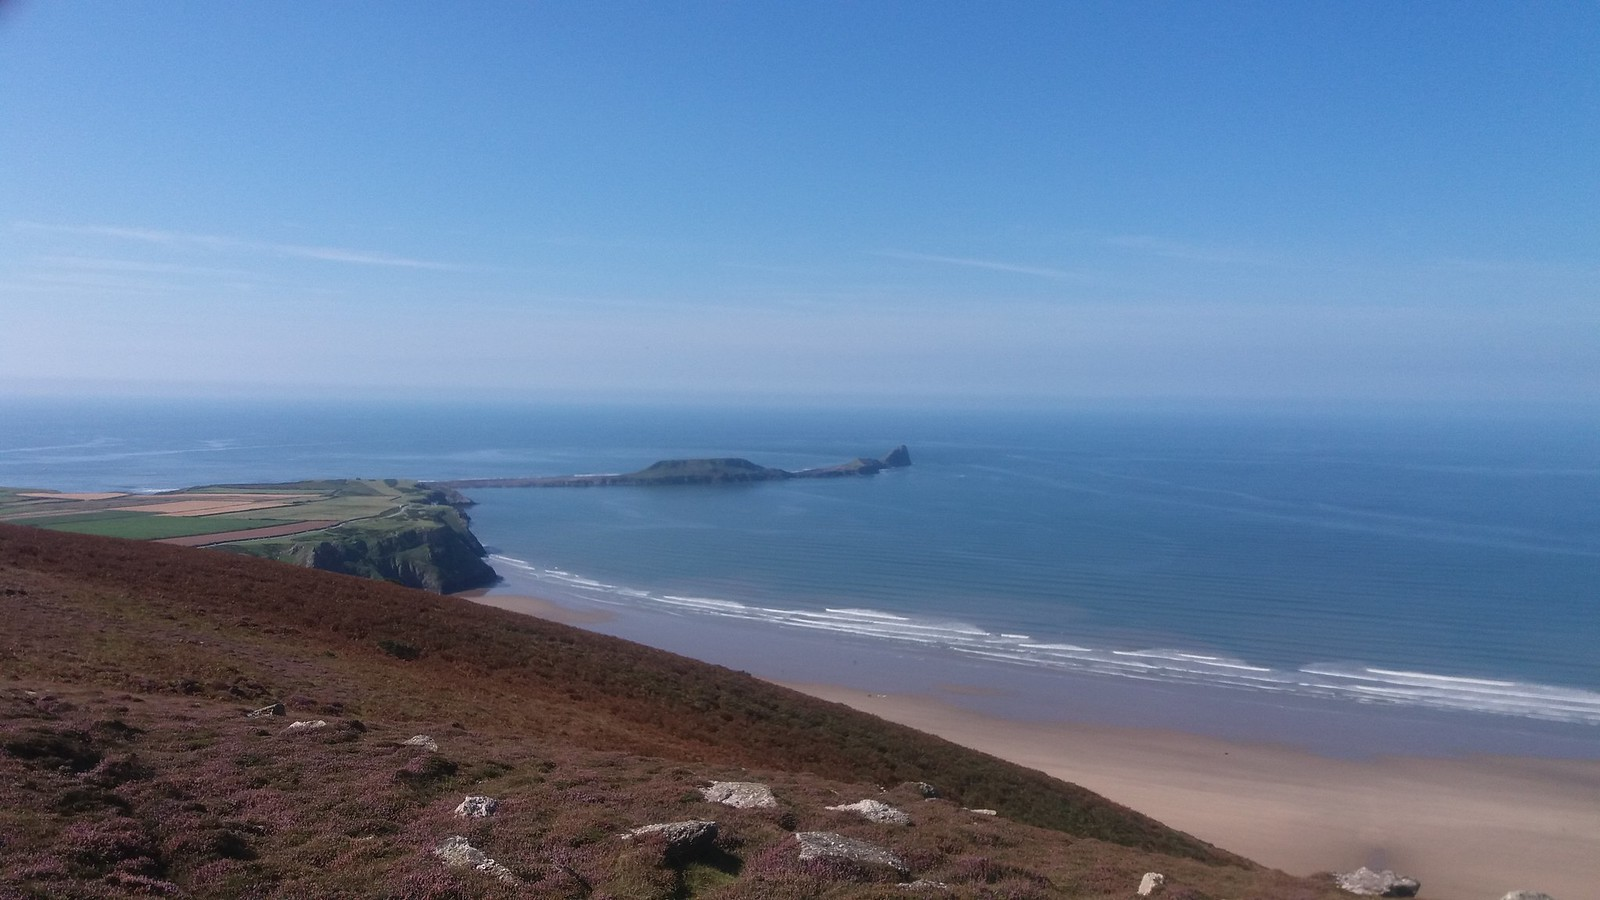 20160829_113850 Worms Head from summit of Rhossili down